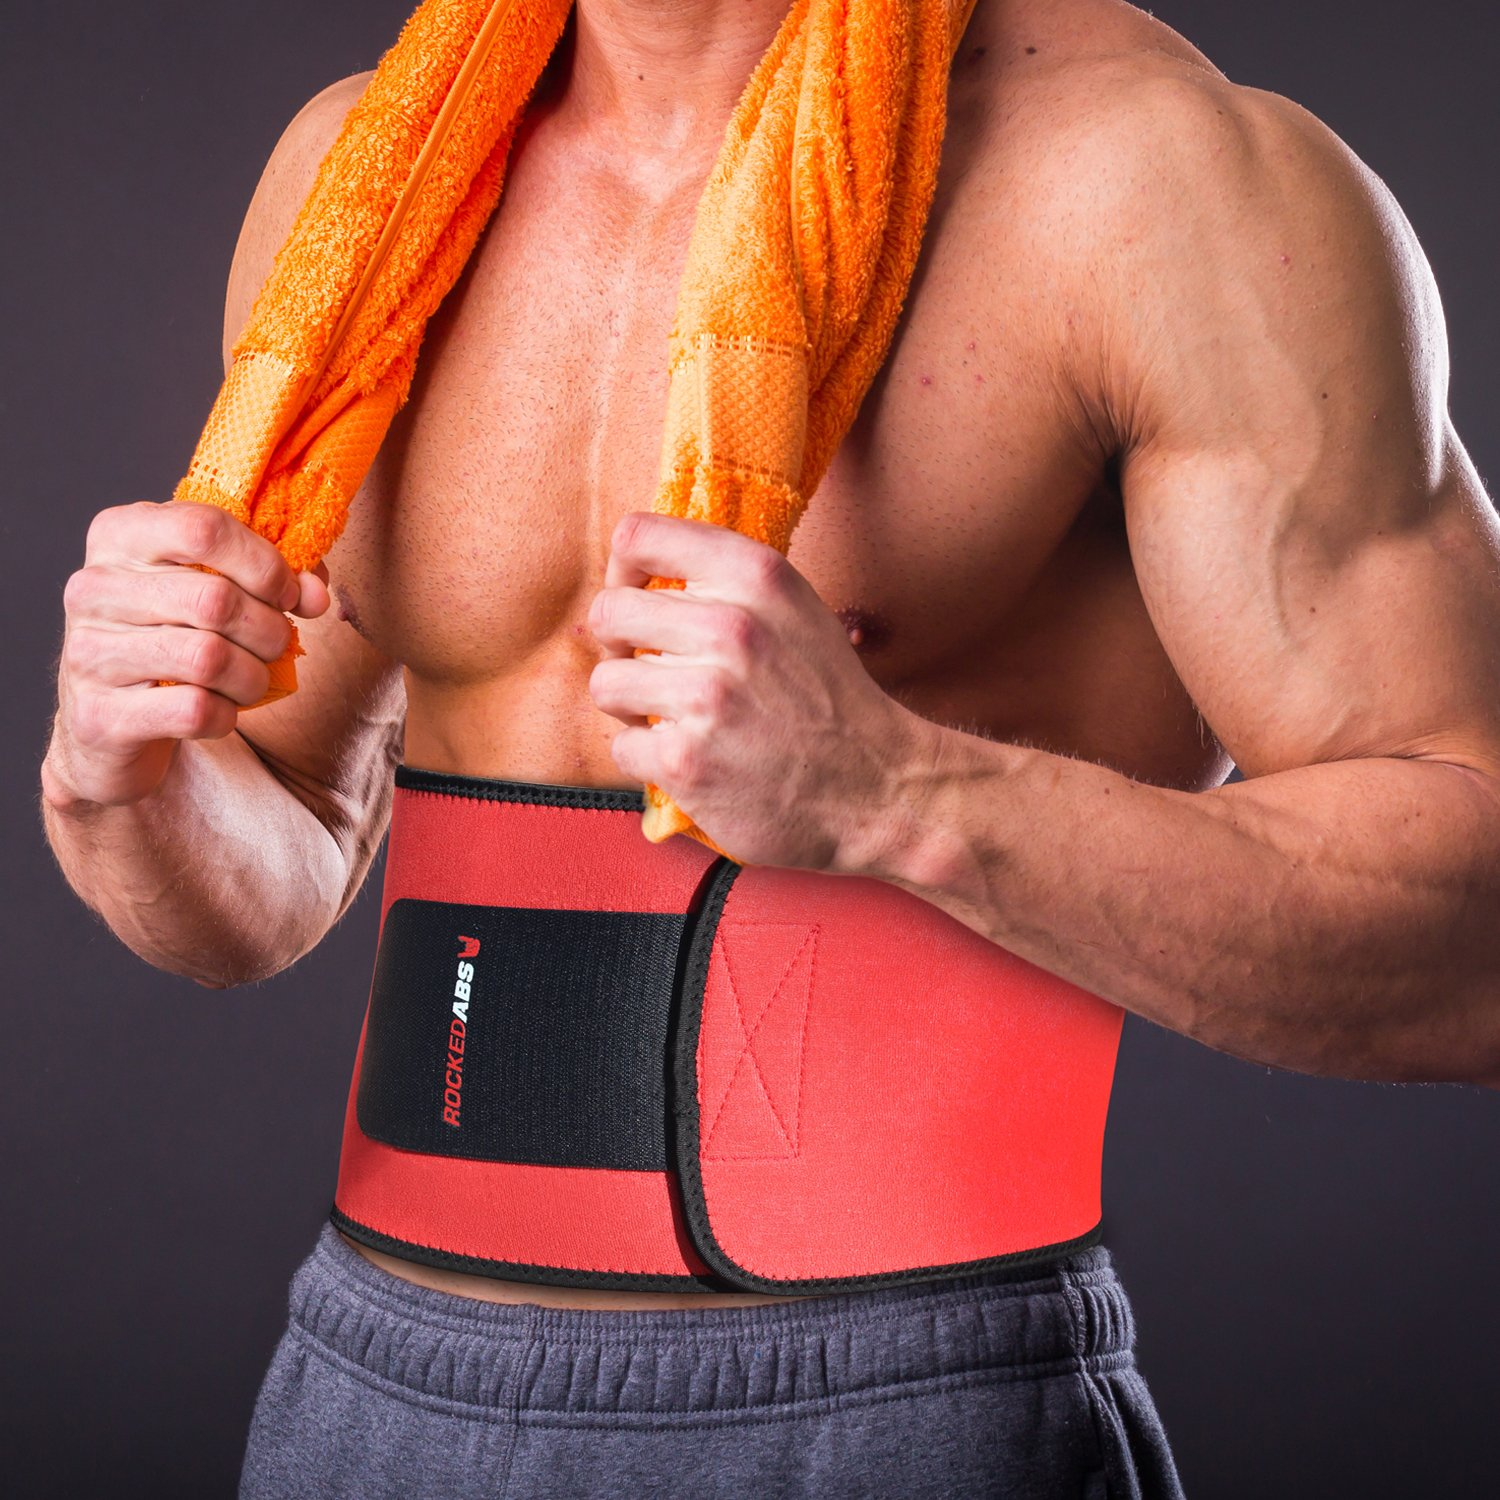 ac5d757194 Amazon.com   1 Workout Waist Trimmer Belt for Men and Women - Pro Fitness  Trainer Quality - Provides Back Support While Burning Belly Fat - Fully  Adjustable ...